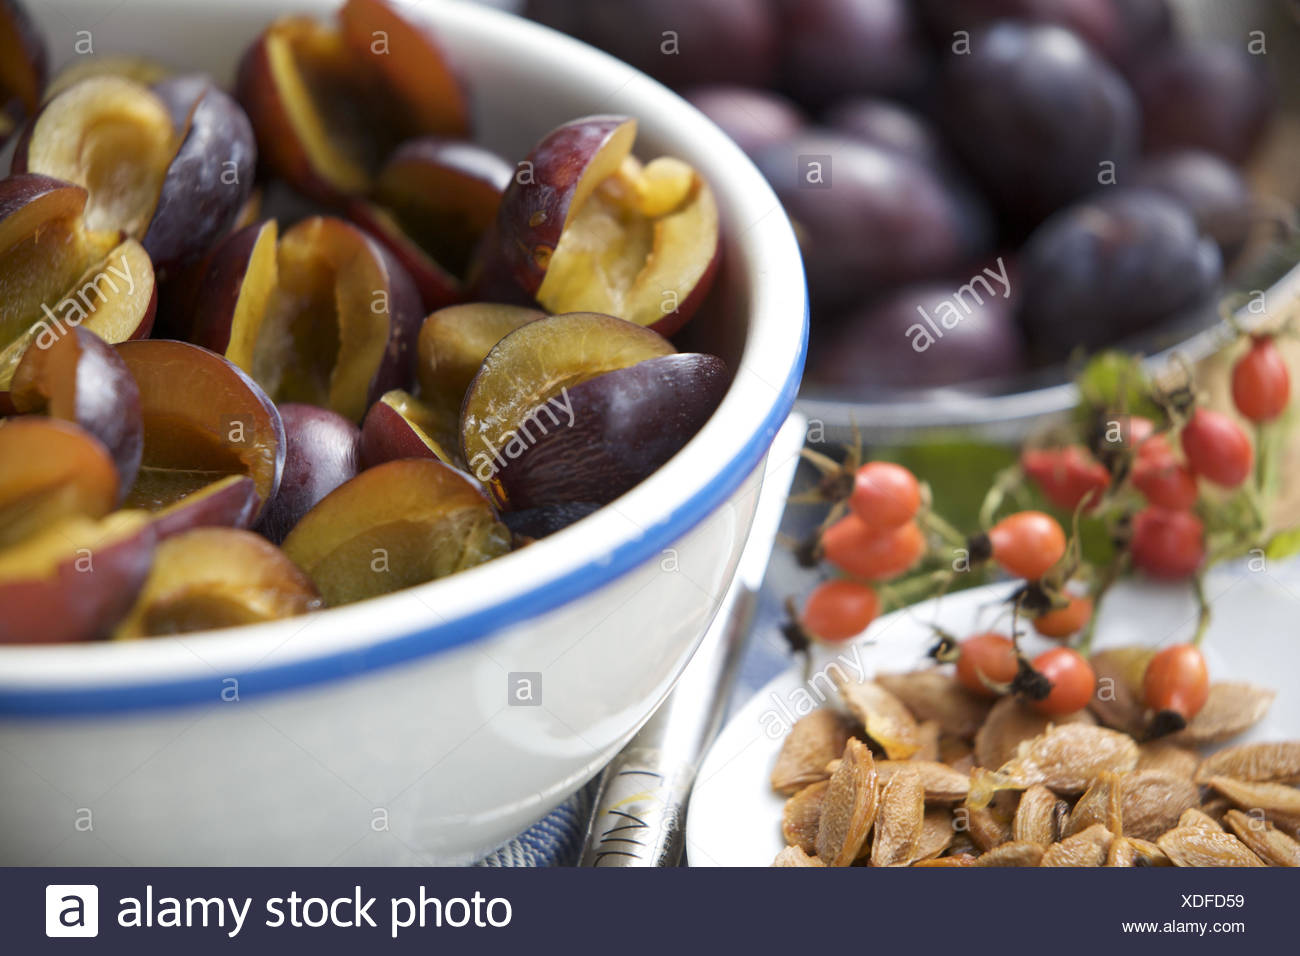 Plums core, - Stock Image